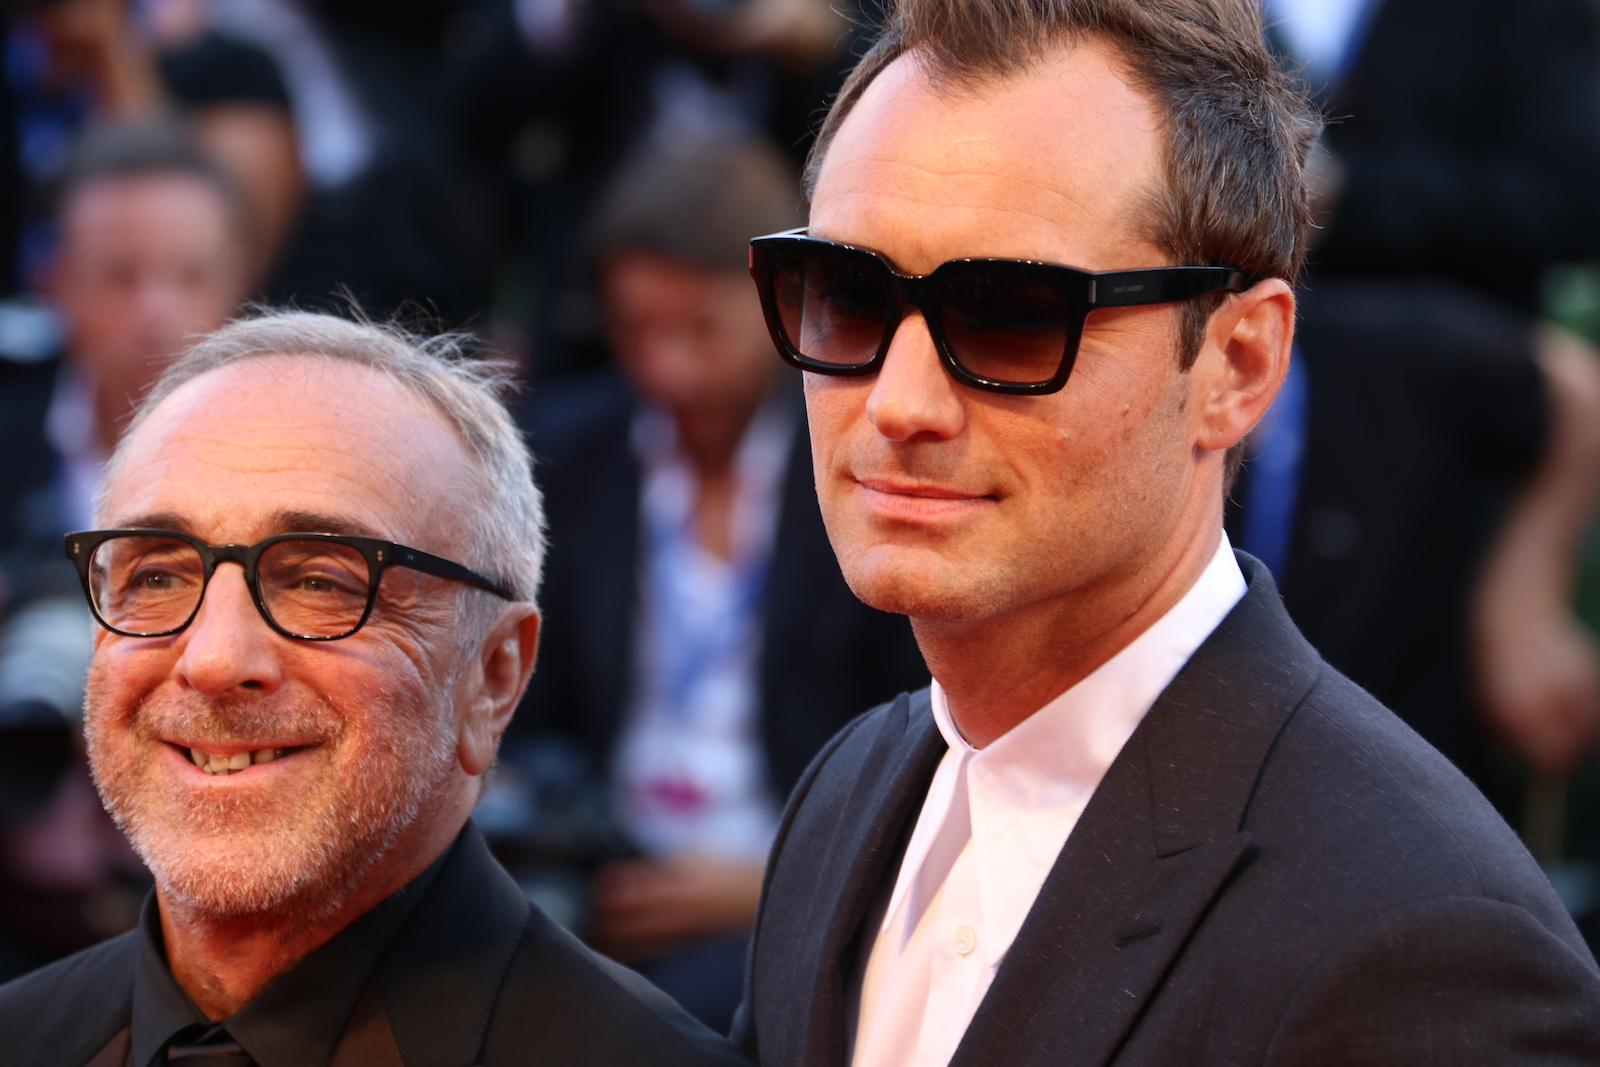 Venezia 2016: Jude Law e Silvio Orlando sul red carpet di The Young Pope